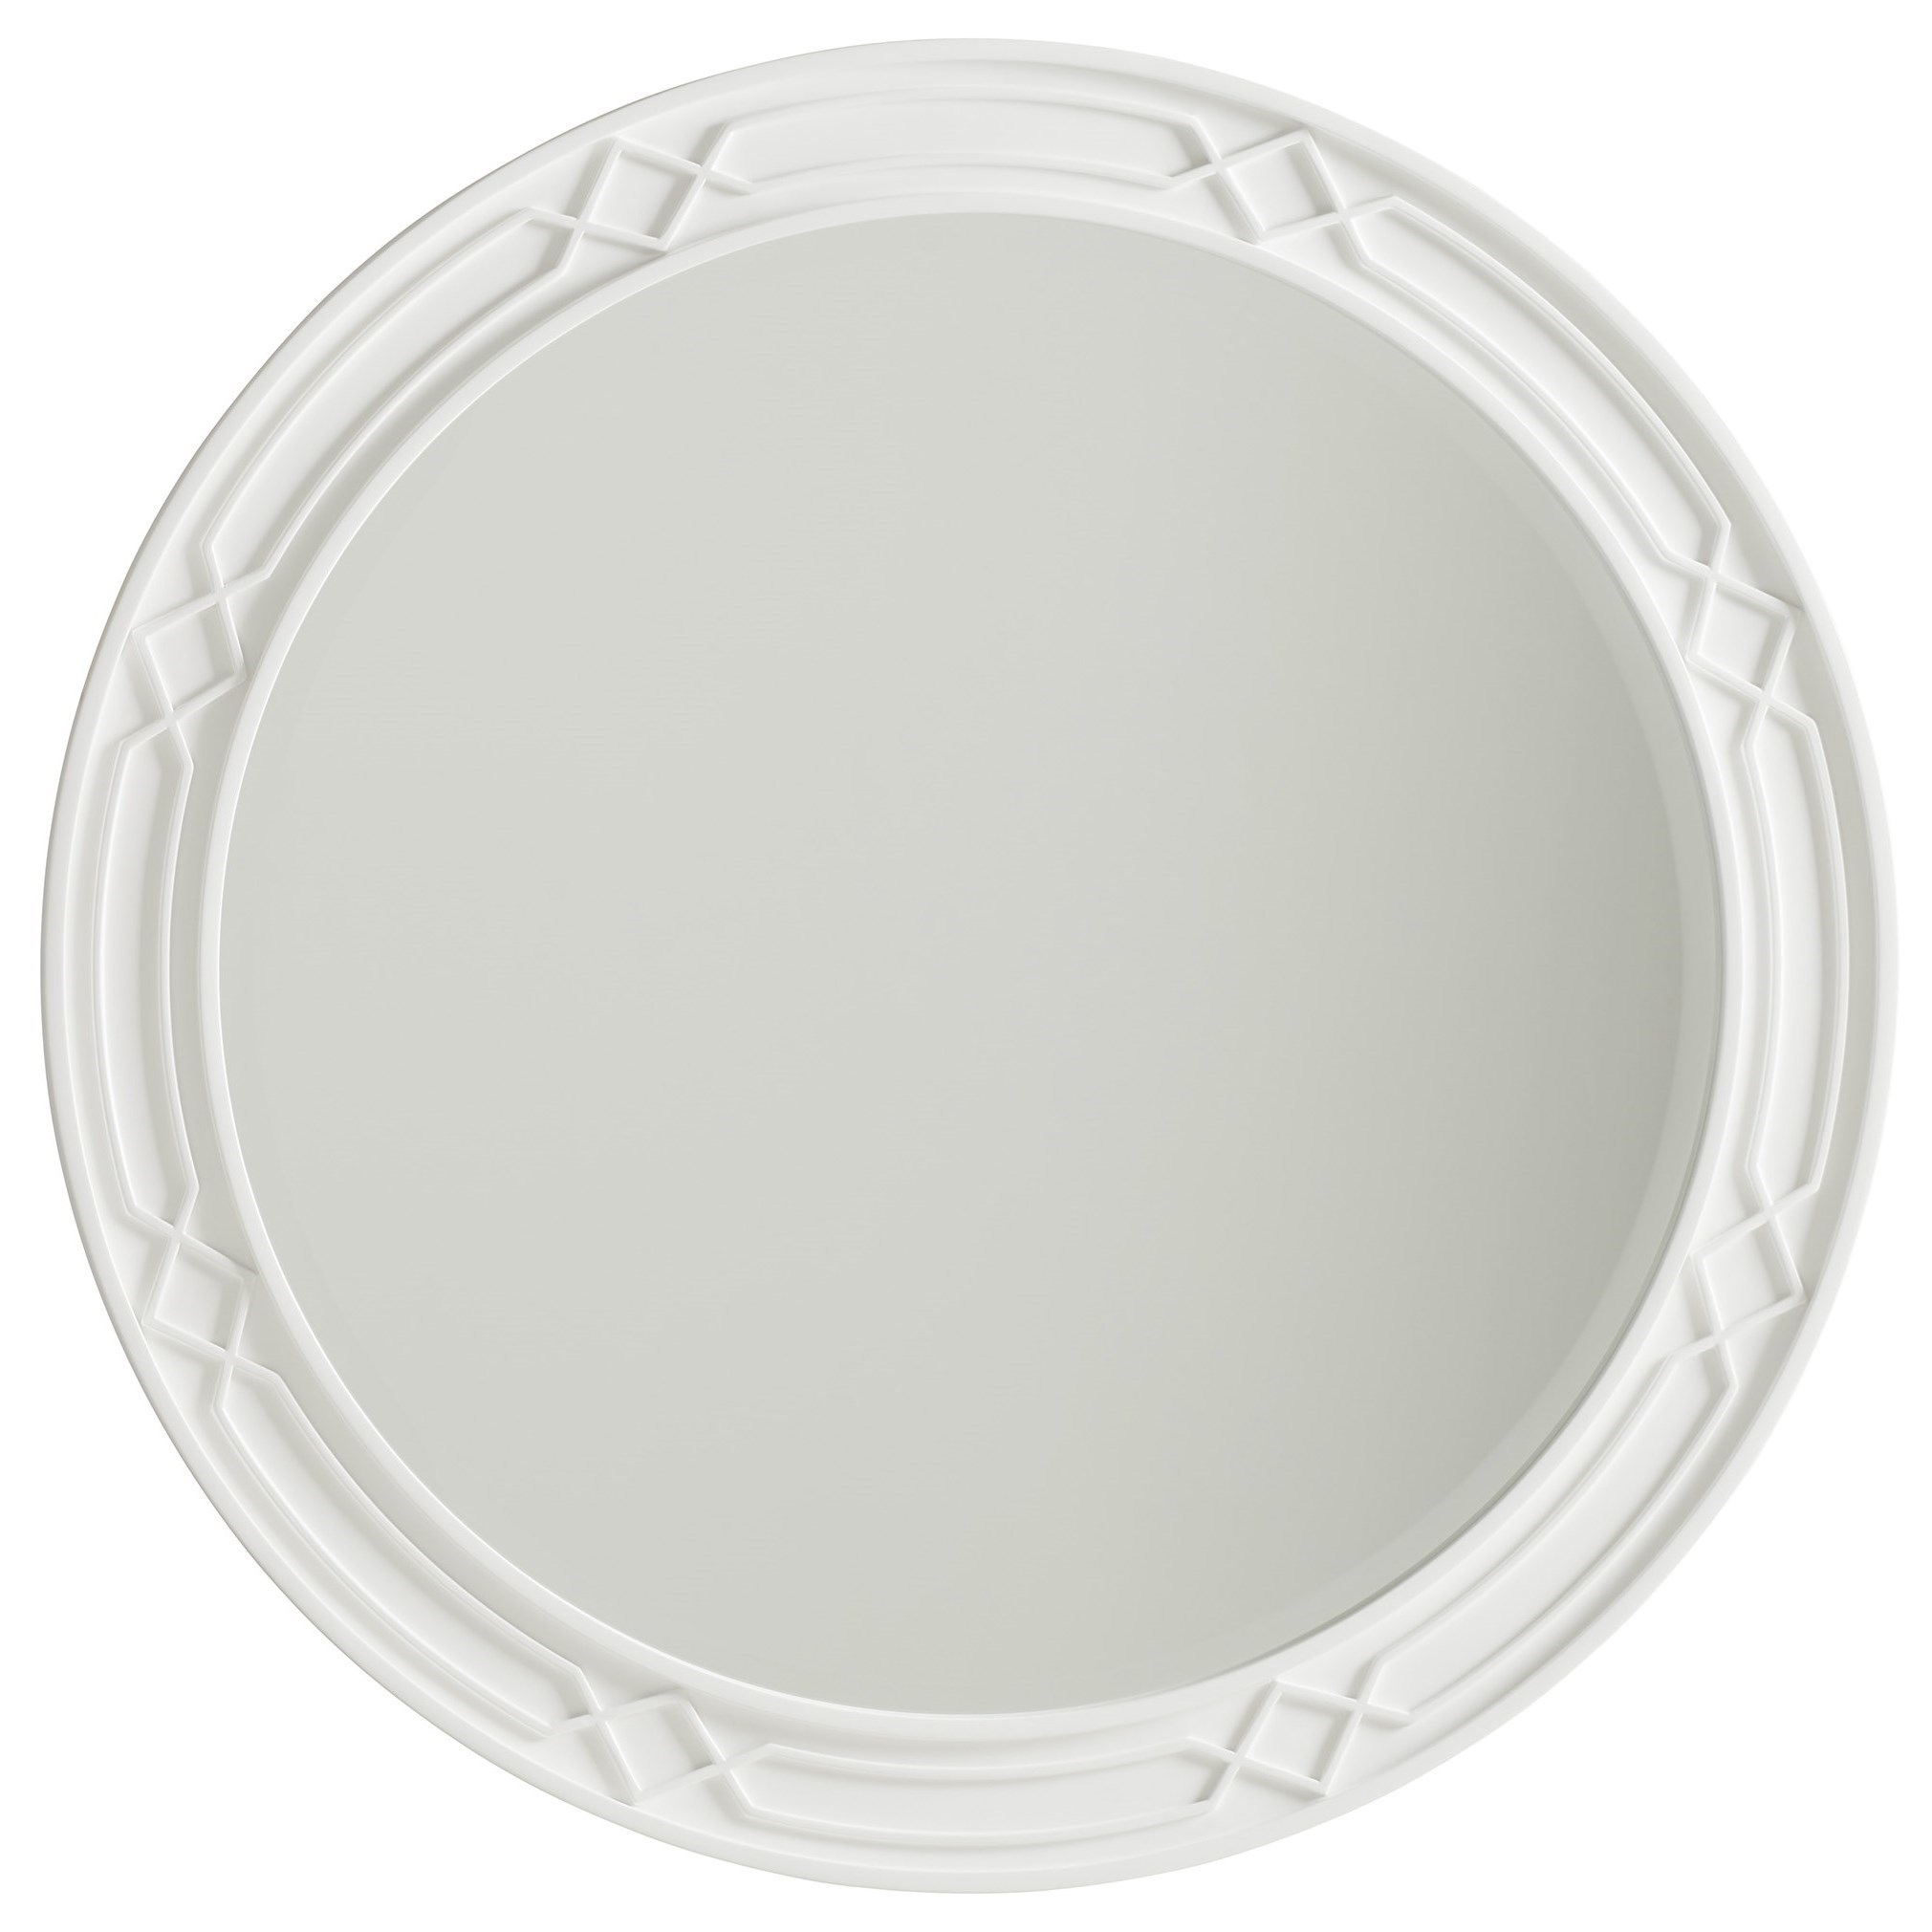 Avondale Carreno Round Mirror by Lexington at Baer's Furniture